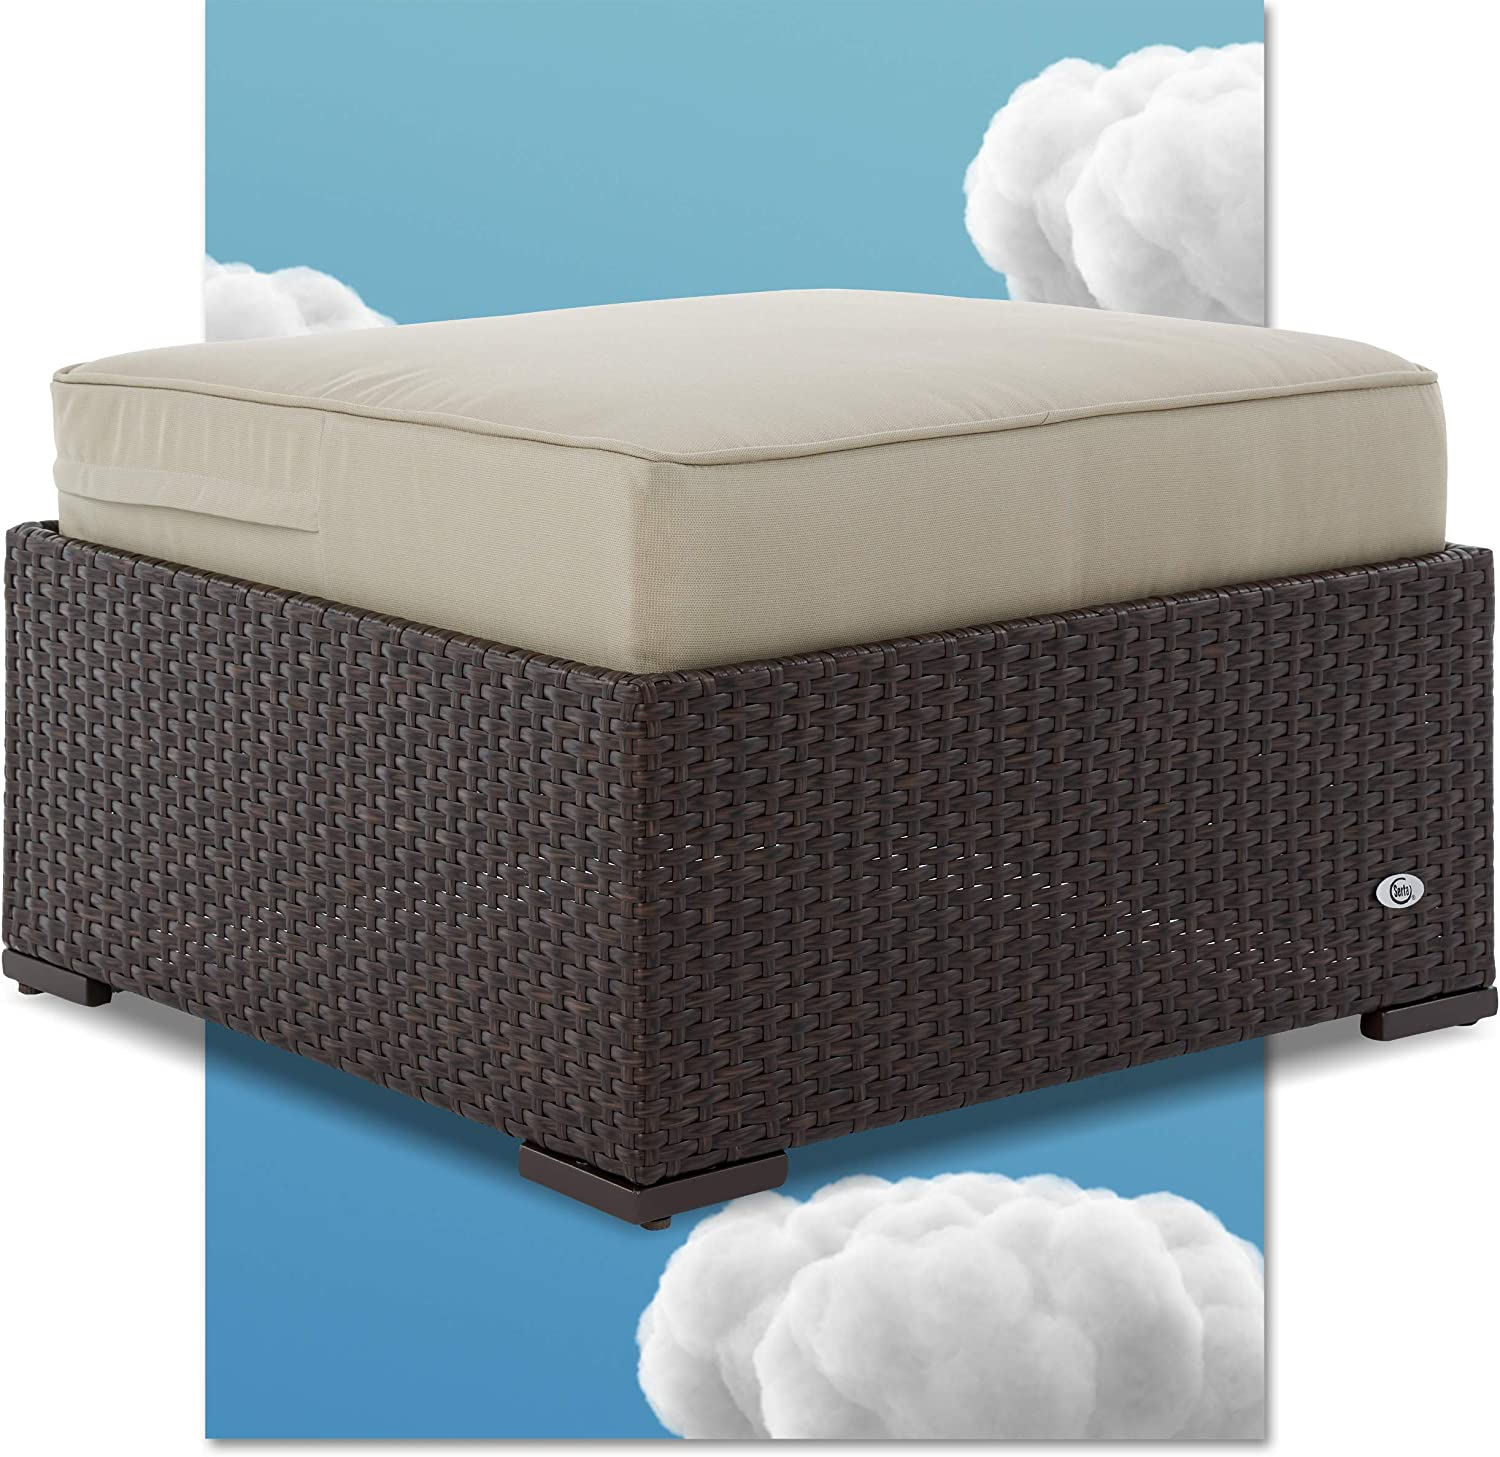 Serta Laguna Resin Outdoor Patio Furniture Collection, Ottoman, Brown Wicker